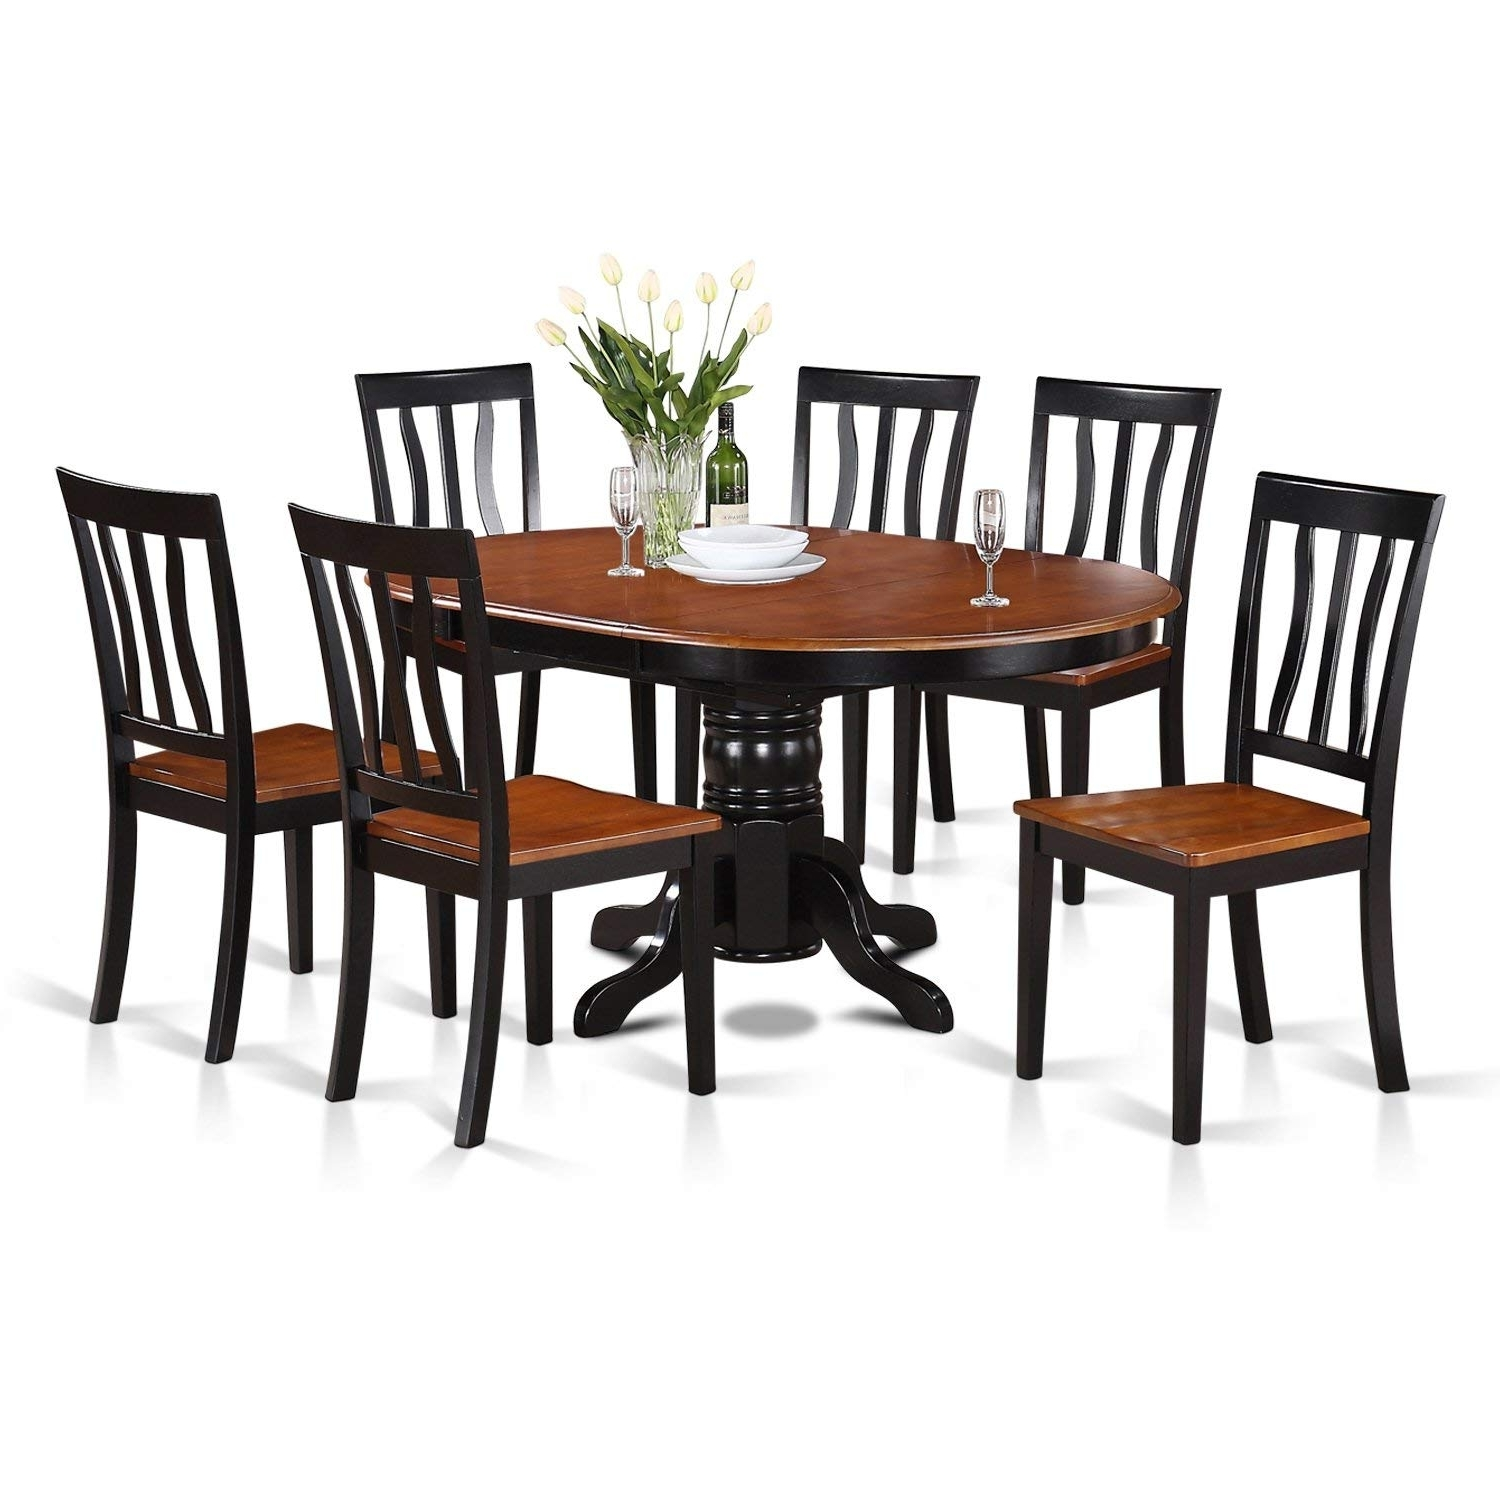 Trendy Jaxon 6 Piece Rectangle Dining Sets With Bench & Wood Chairs With Amazon: East West Furniture Avat7 Blk W 7 Piece Dining Table Set (View 7 of 25)